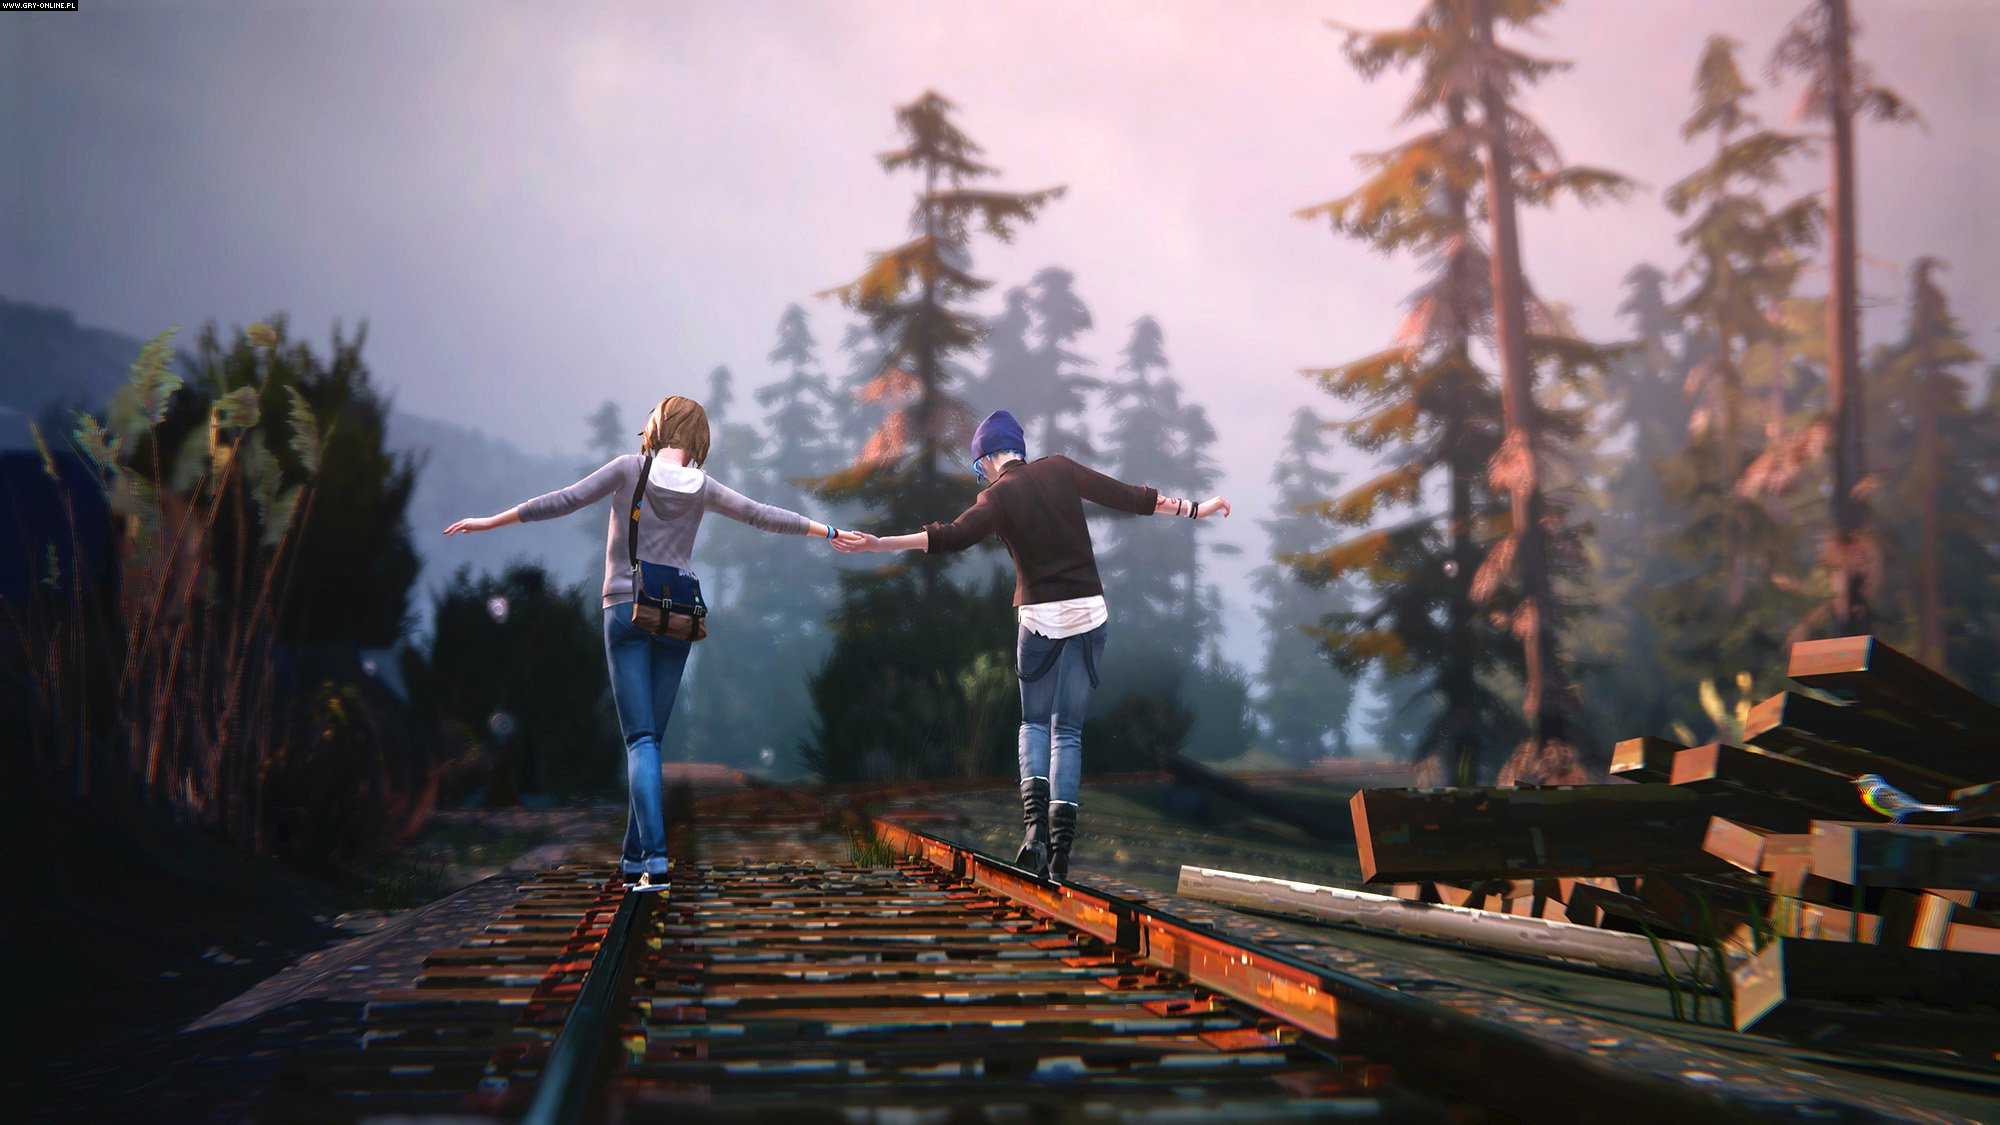 Life is Strange PC, X360, PS3, PS4, XONE Games Image 11/36, DONTNOD Entertainment, Square-Enix / Eidos